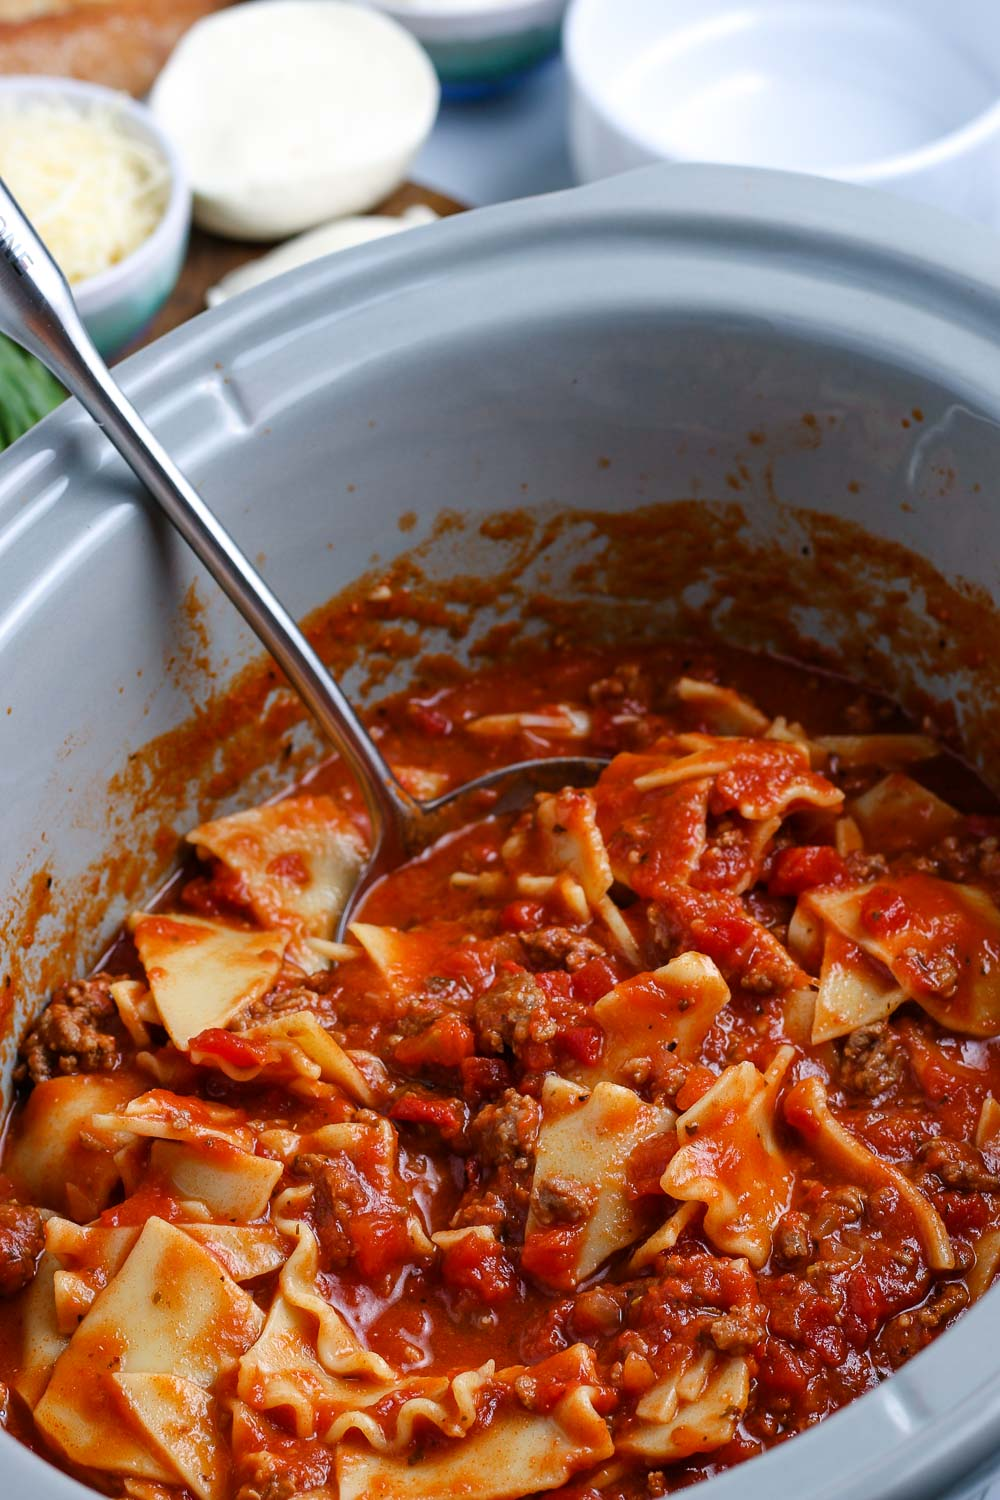 The finished Crockpot Lasagna Soup in the slow cooker.